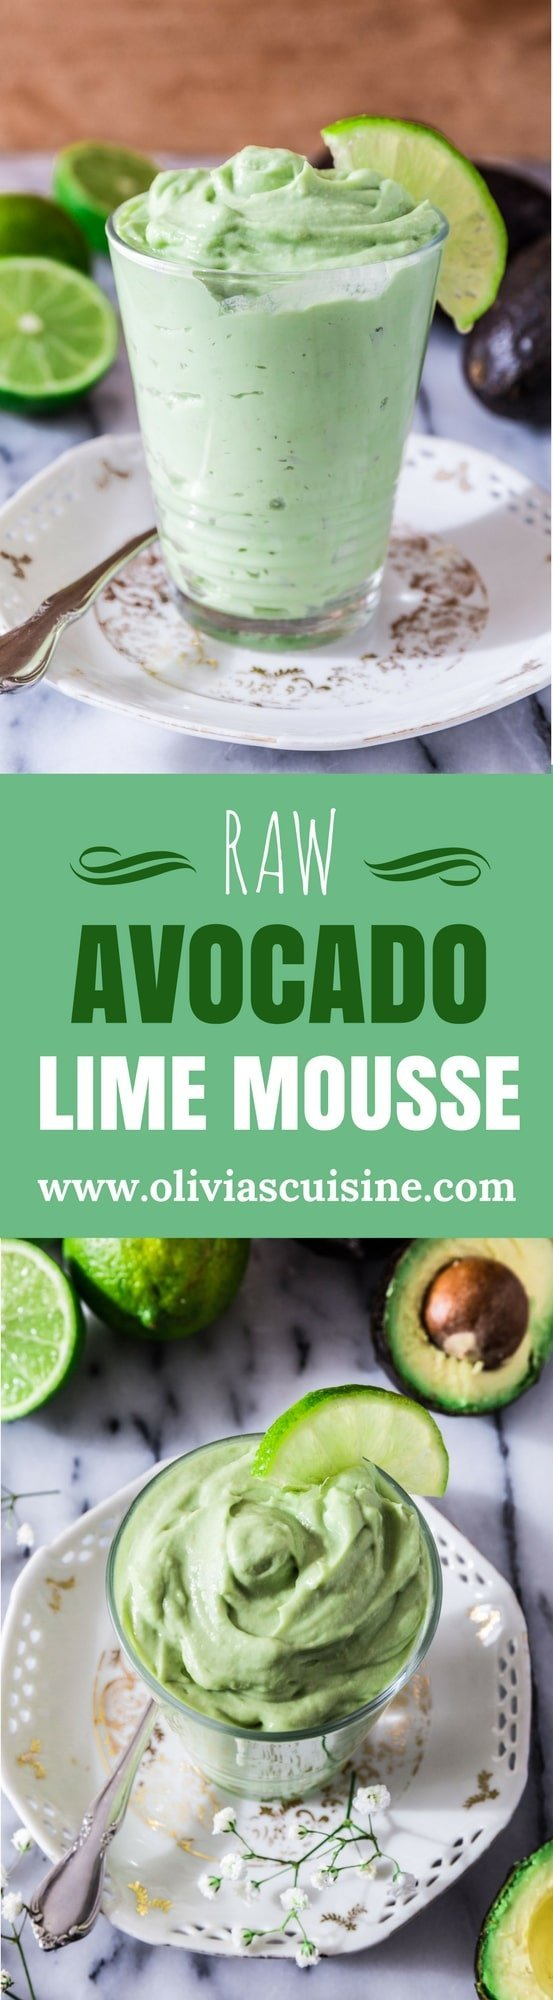 Raw Avocado Lime Mousse | www.oliviascuisine.com | Looking for a guilt free dessert? This Raw Avocado Lime Mousse will do the trick. Not only delicious but also heart check certified! ❤️️ Oh, and made with only 3 ingredients. What could be better than that? (Recipe by @oliviascuisine.)